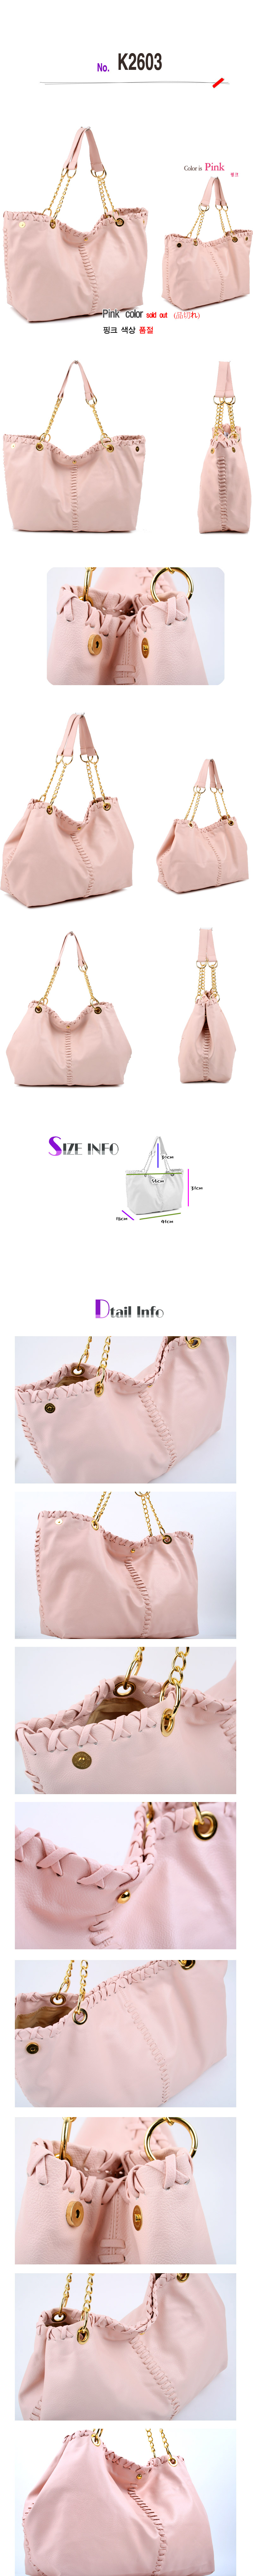 handbag no.K2603view